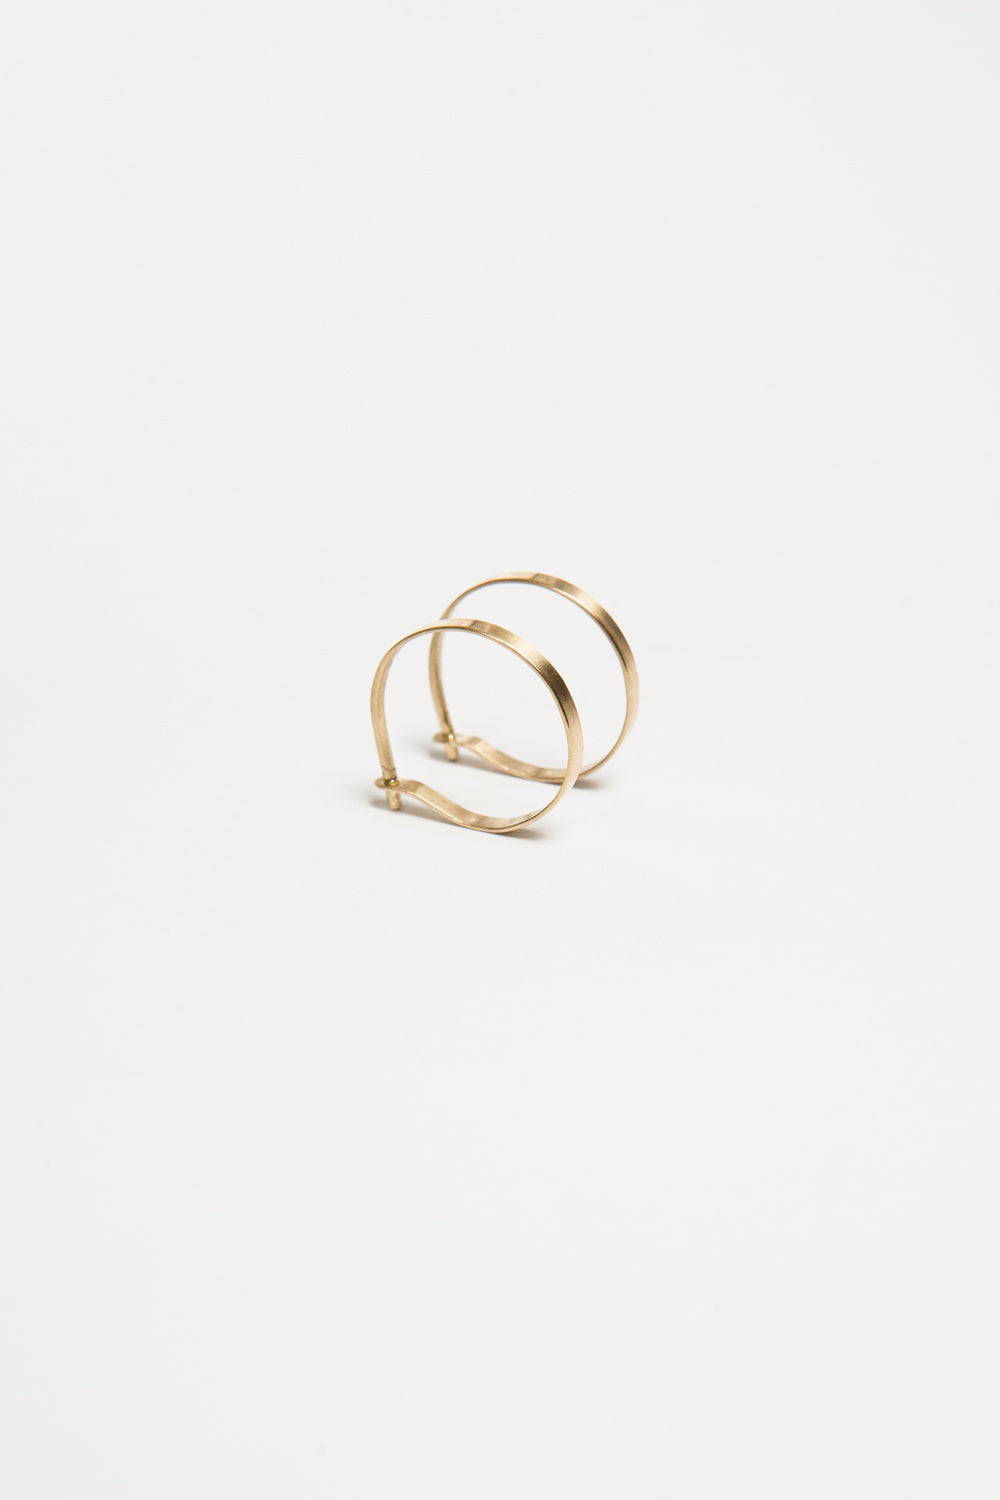 Earrings No.12 by Johanna Gauder